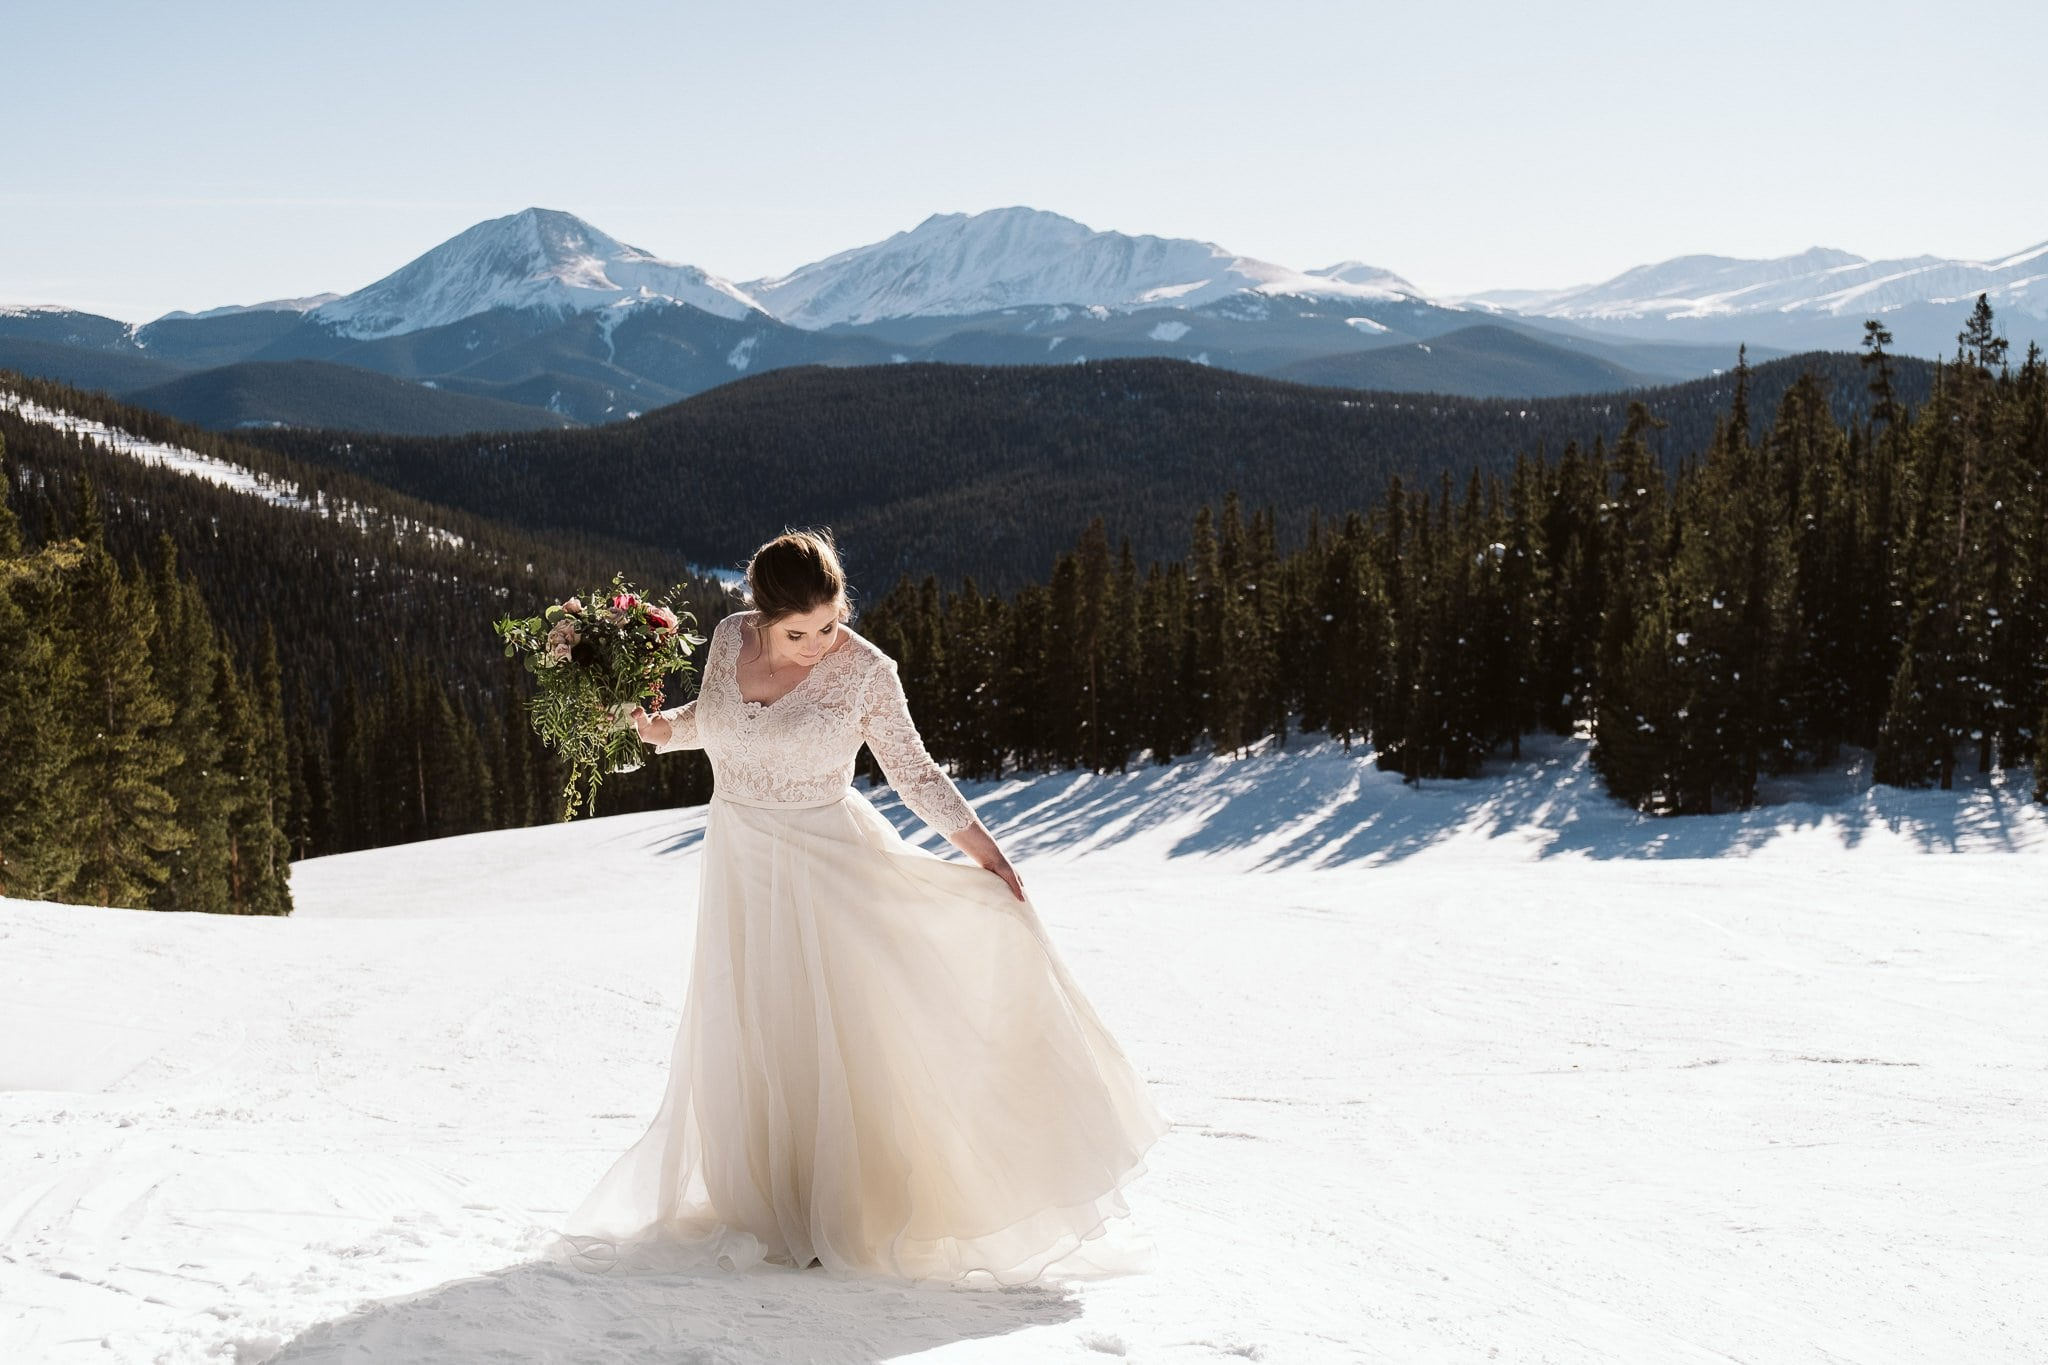 Bride wearing off-white long sleeve wedding dress at winter elopement in the snow.